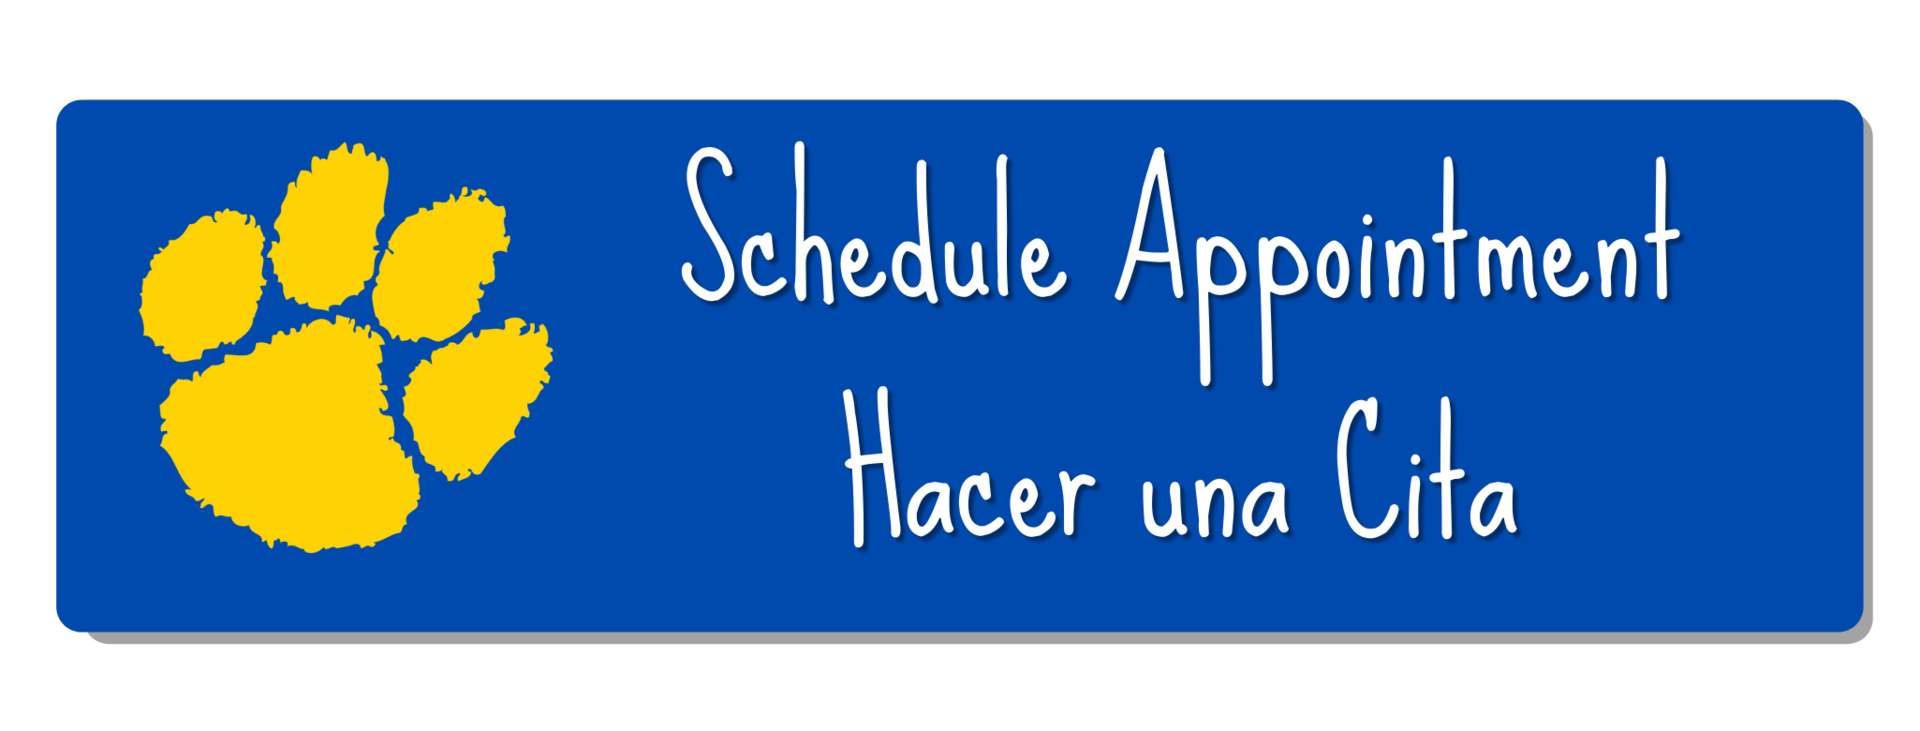 click to schedule appointment, hacer una cita